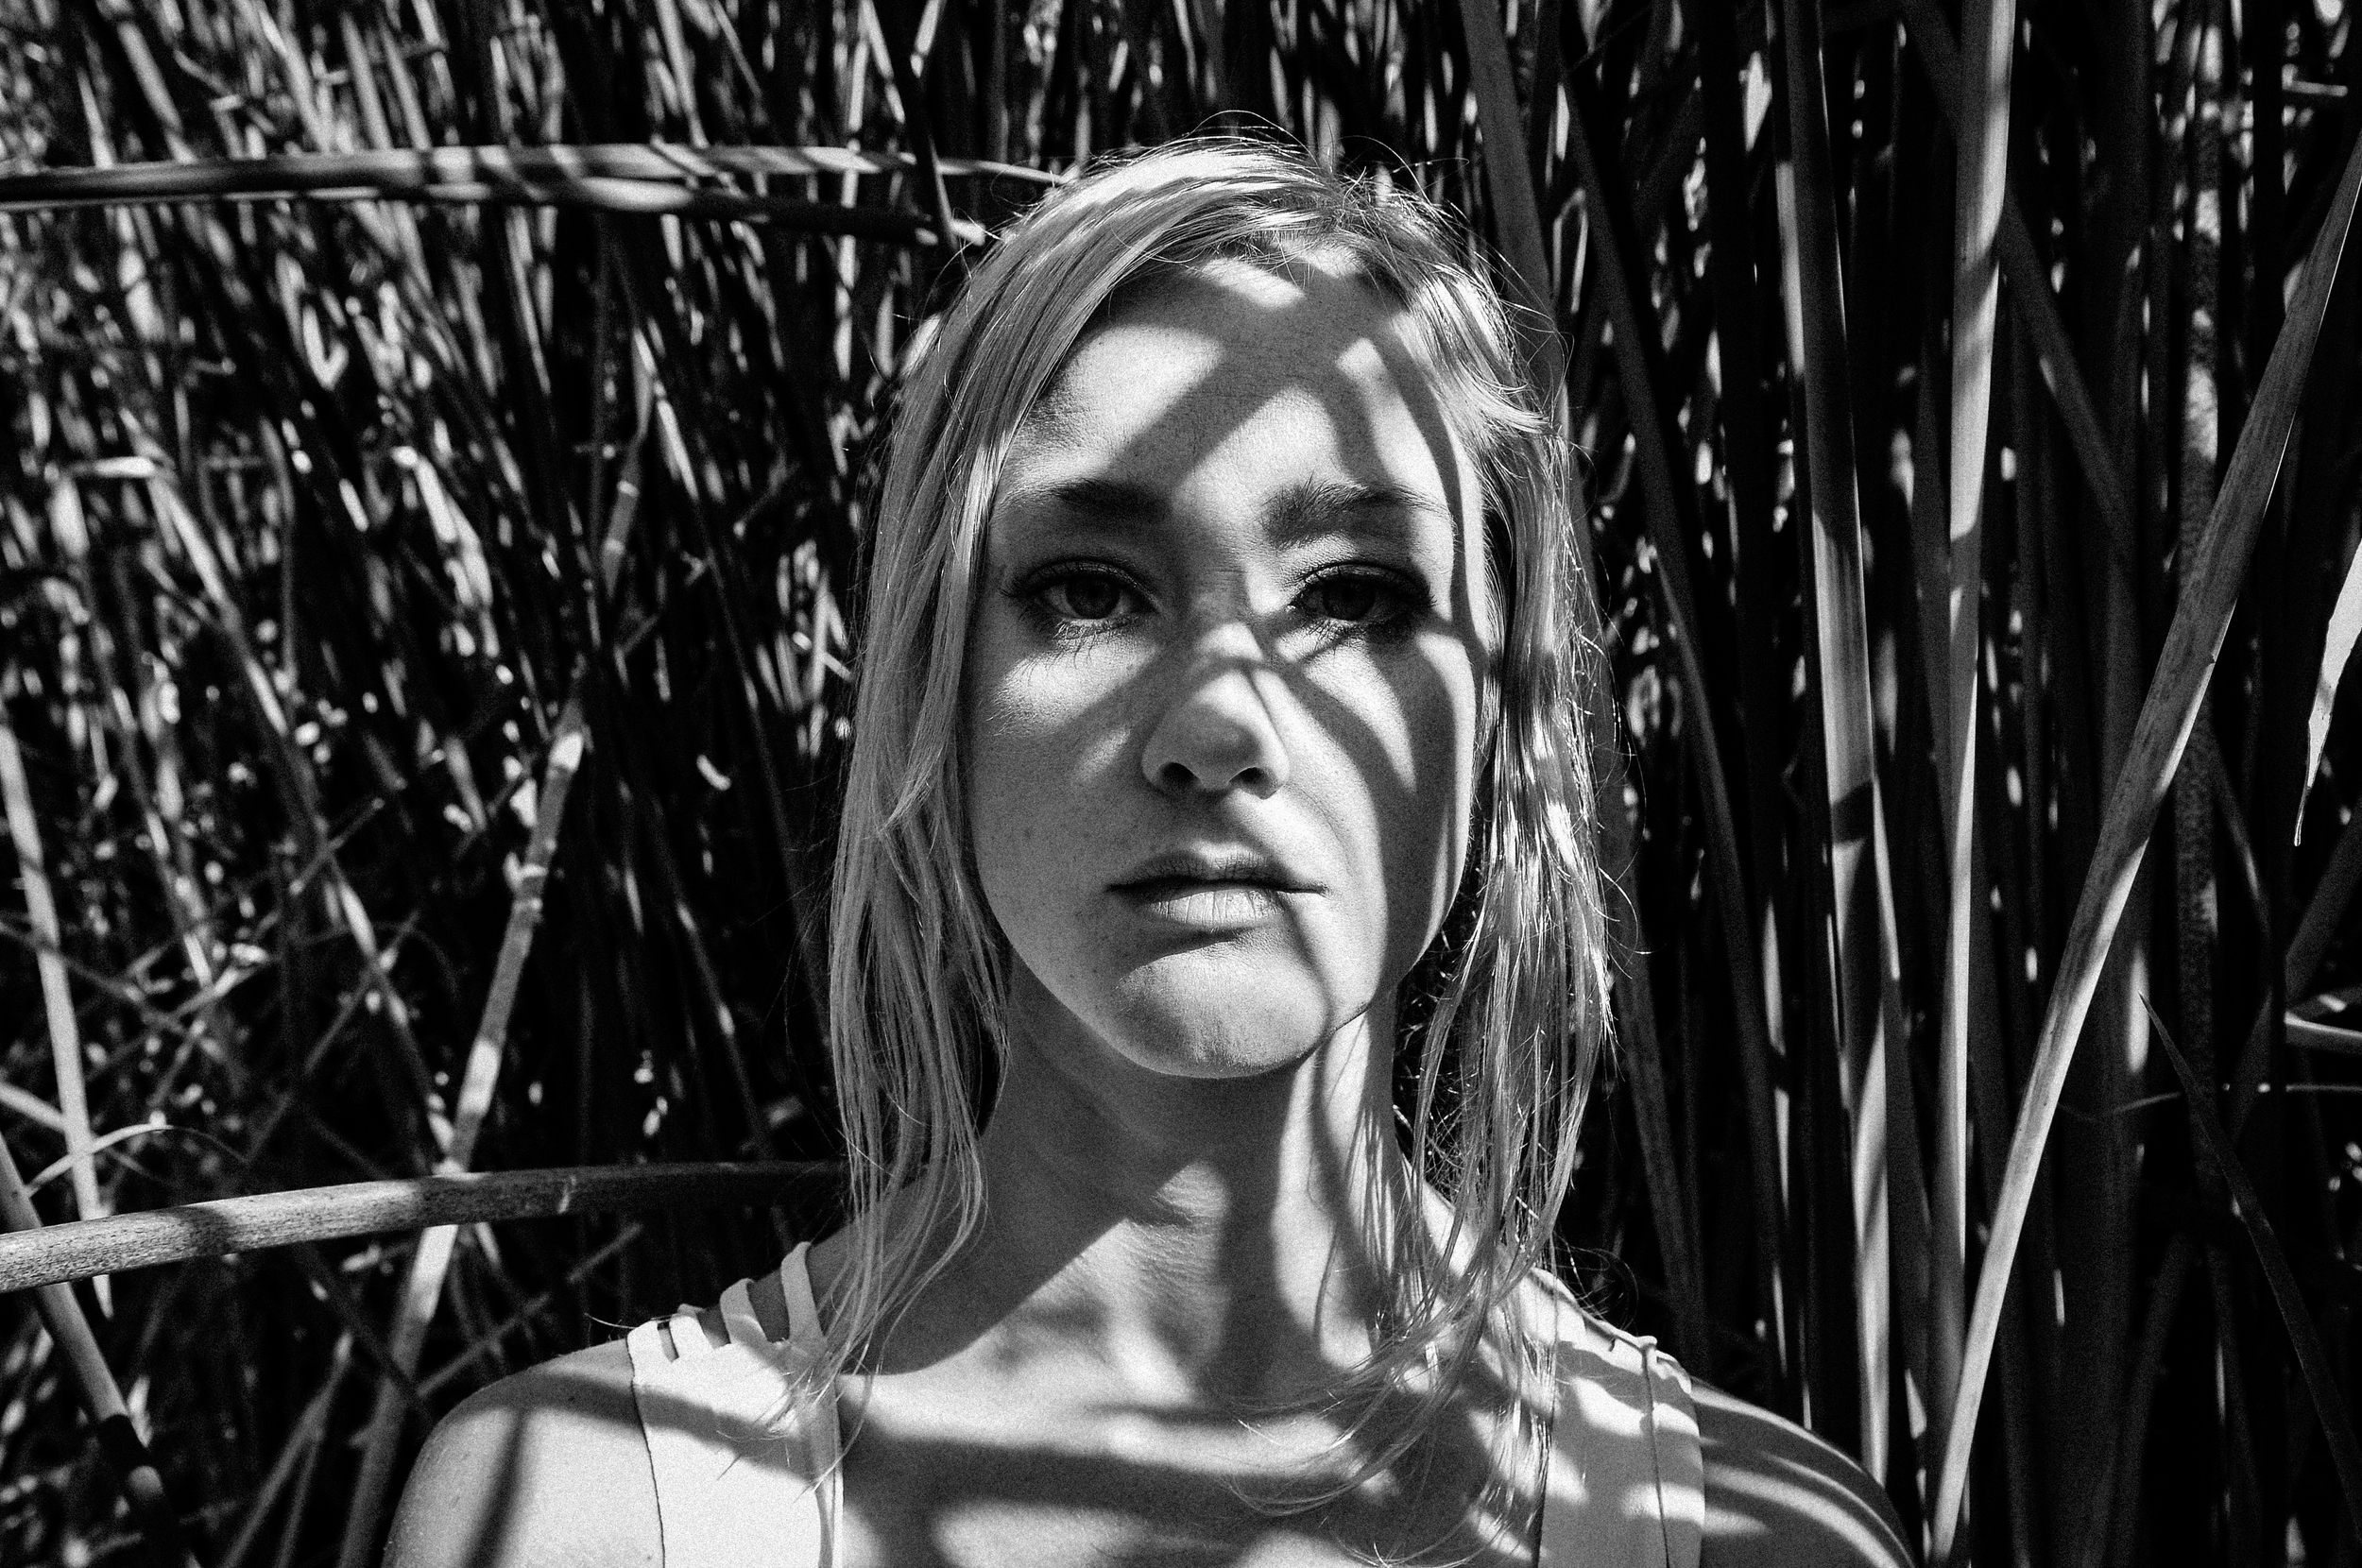 black and white, ashley marie myers, shadows, portrait, portrait of a woman, woman portrait, shadows on the face,